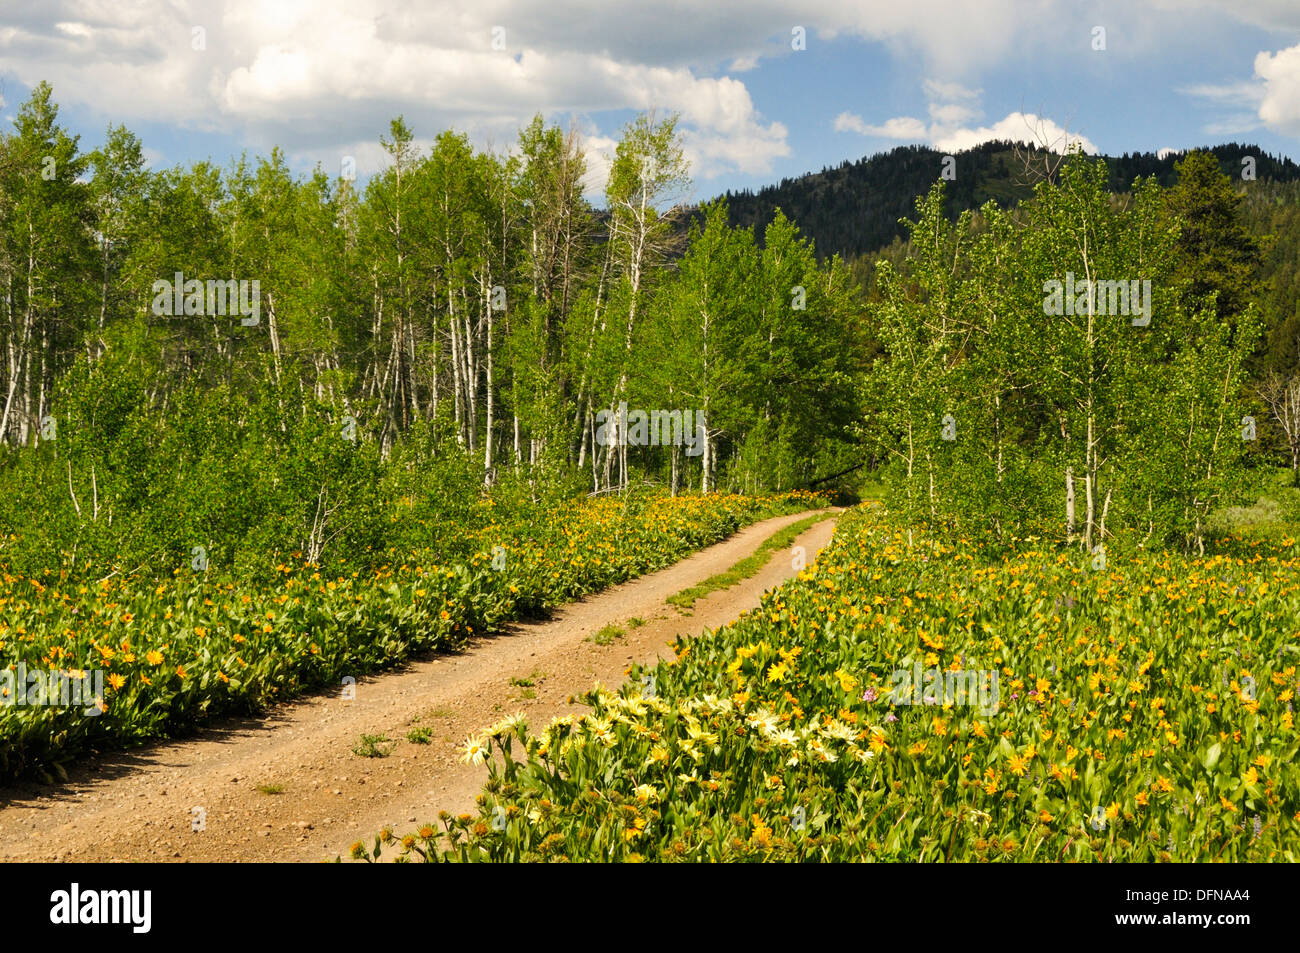 Dirt road through wildflowers disappears into quaking aspens - Stock Image